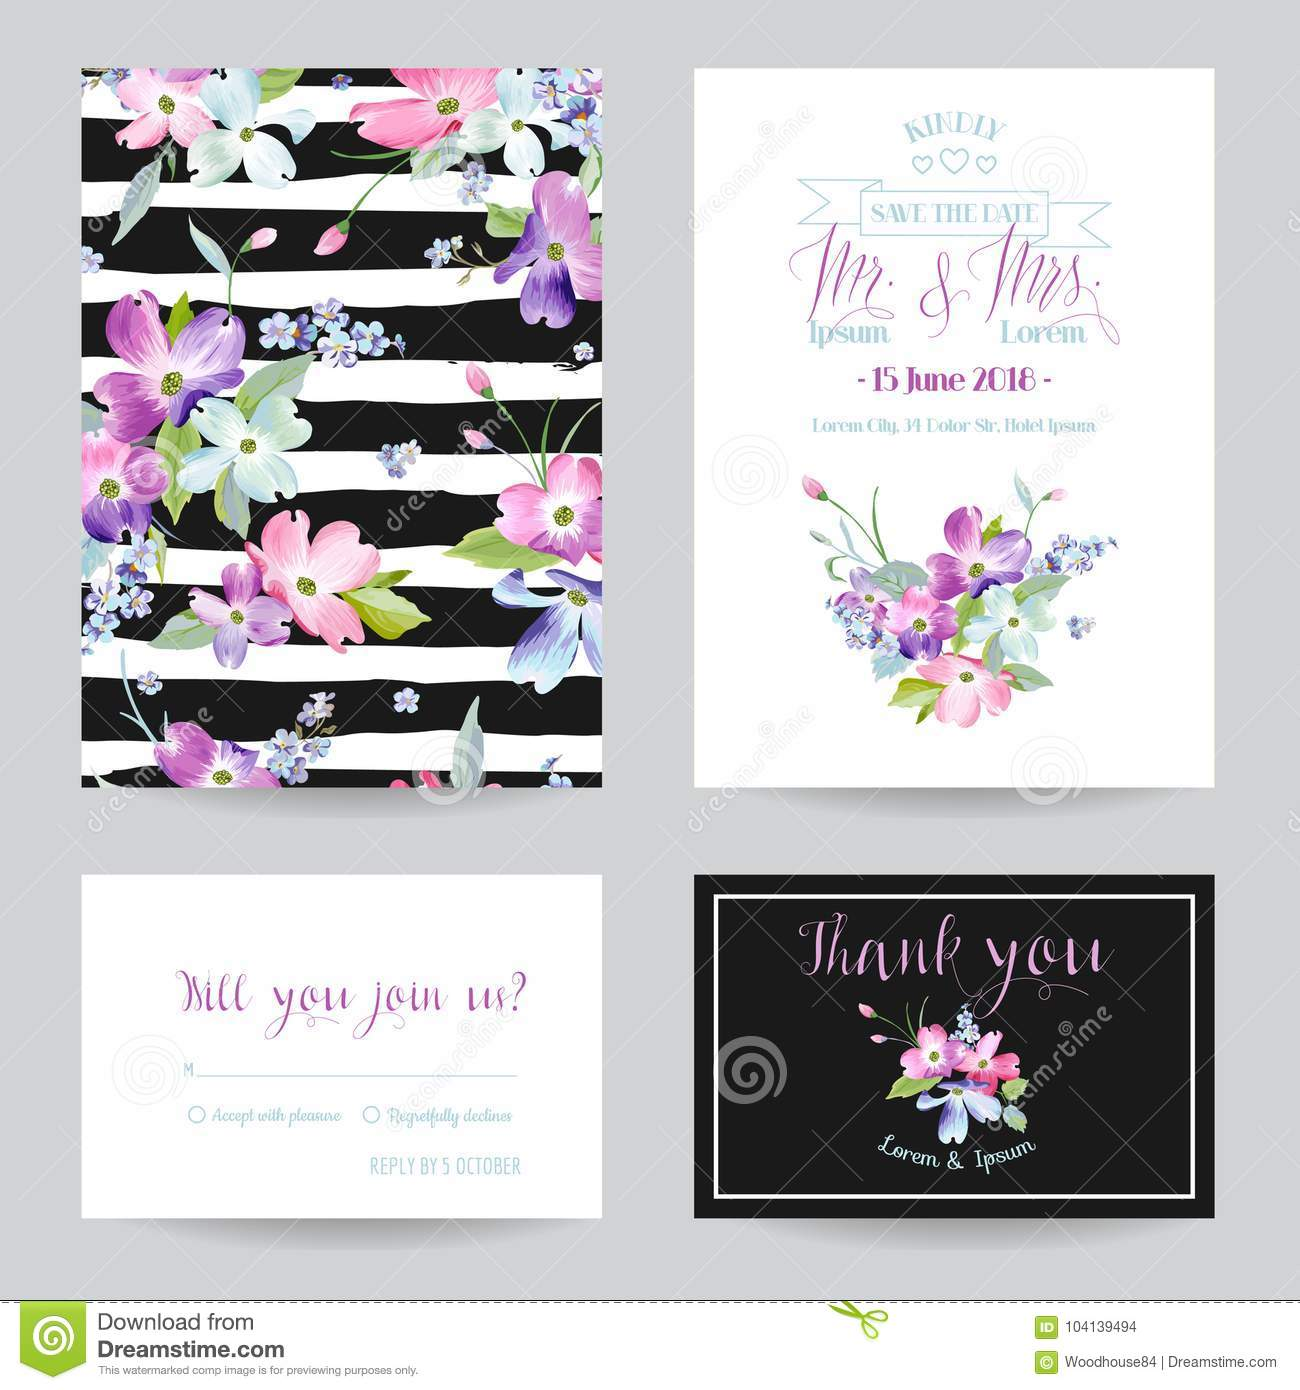 Save the date wedding invitation template with spring dogwood download save the date wedding invitation template with spring dogwood flowers romantic floral greeting card stopboris Image collections